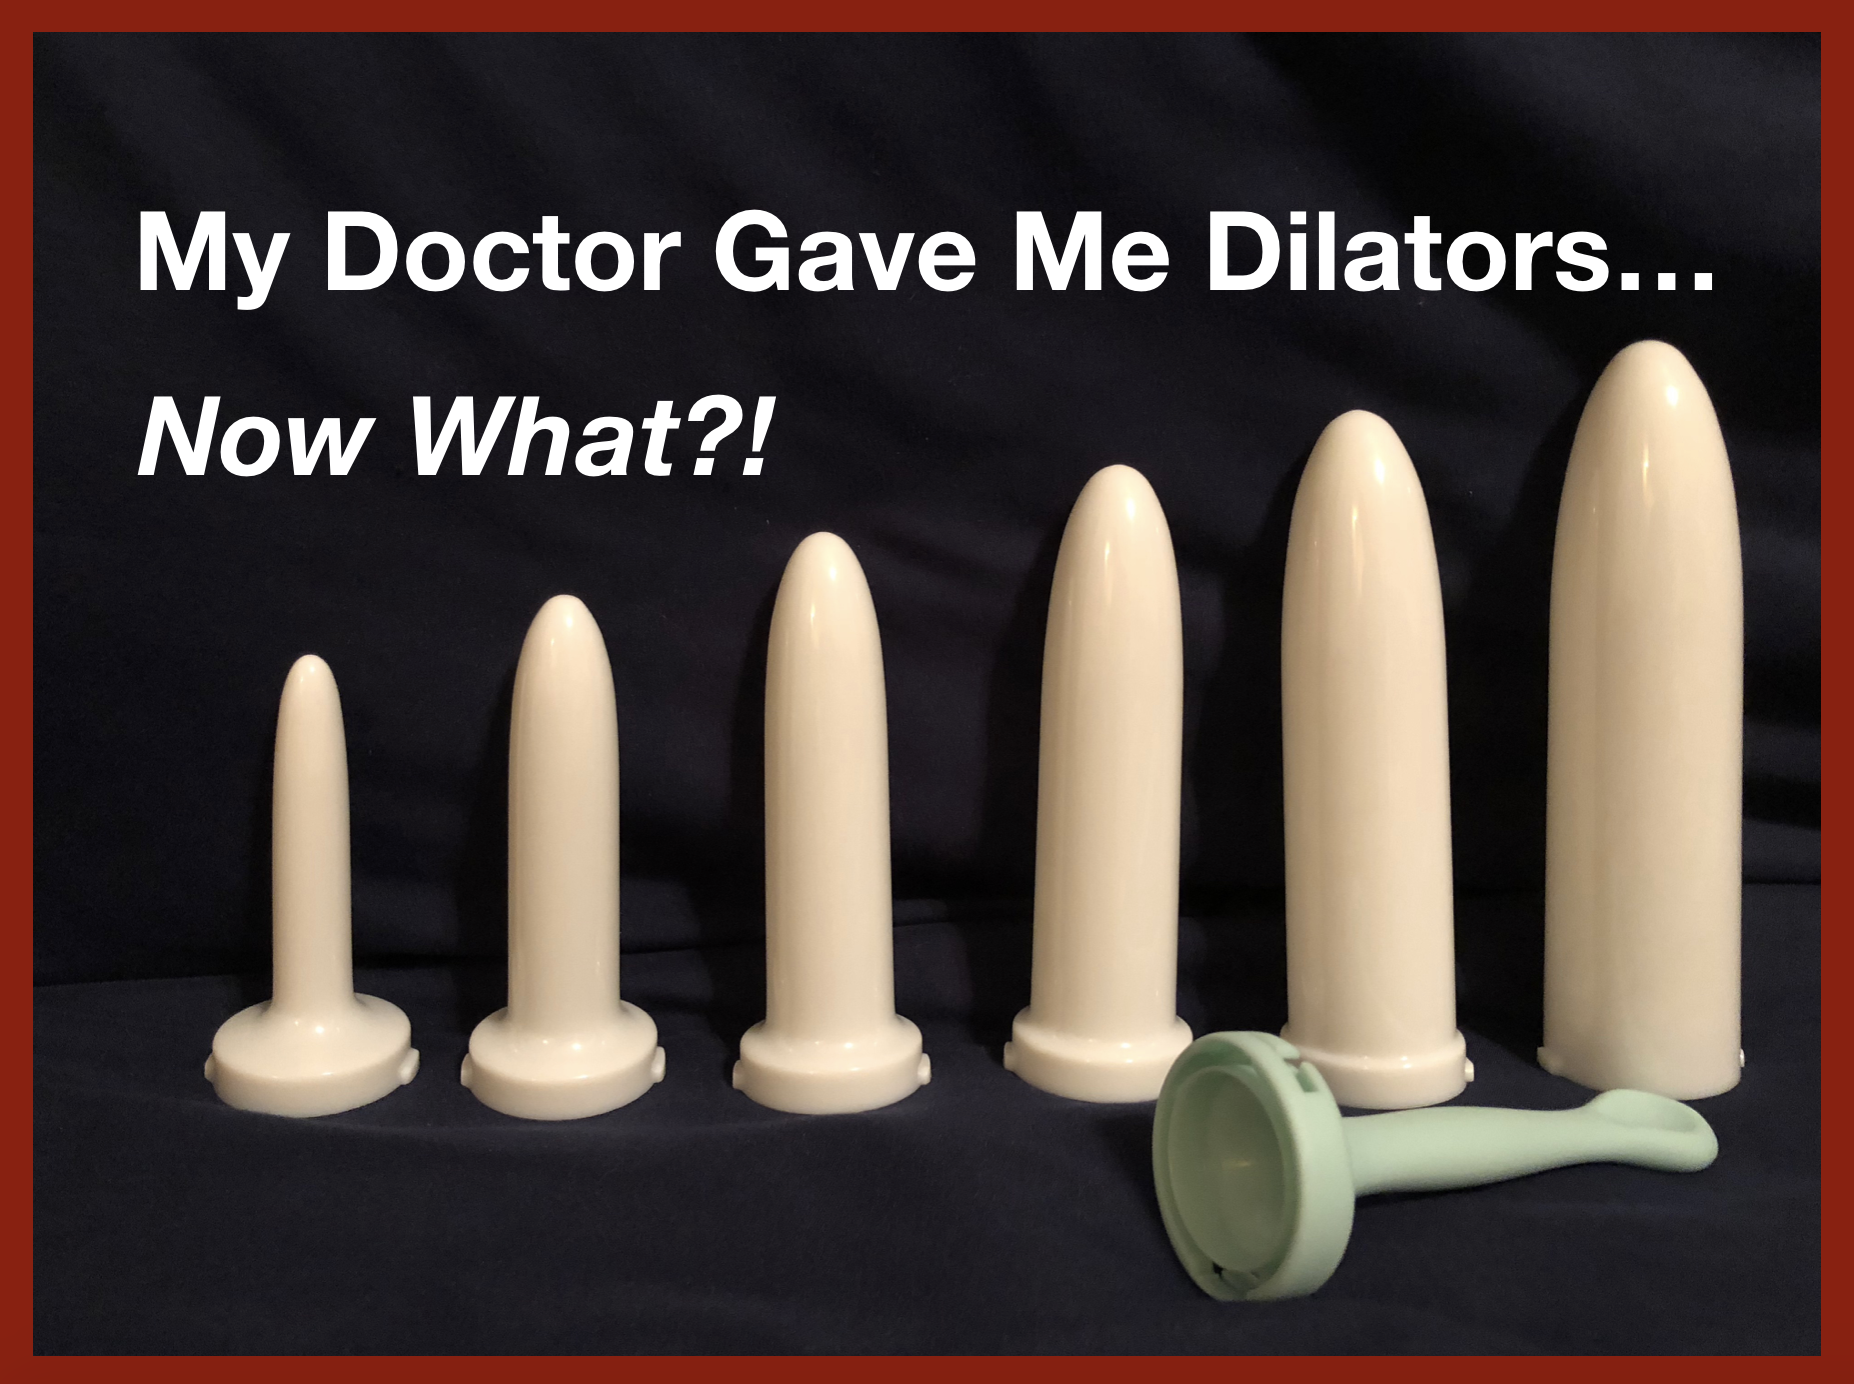 Title Photo: My Doctor Gave Me Dilators... Now What?!